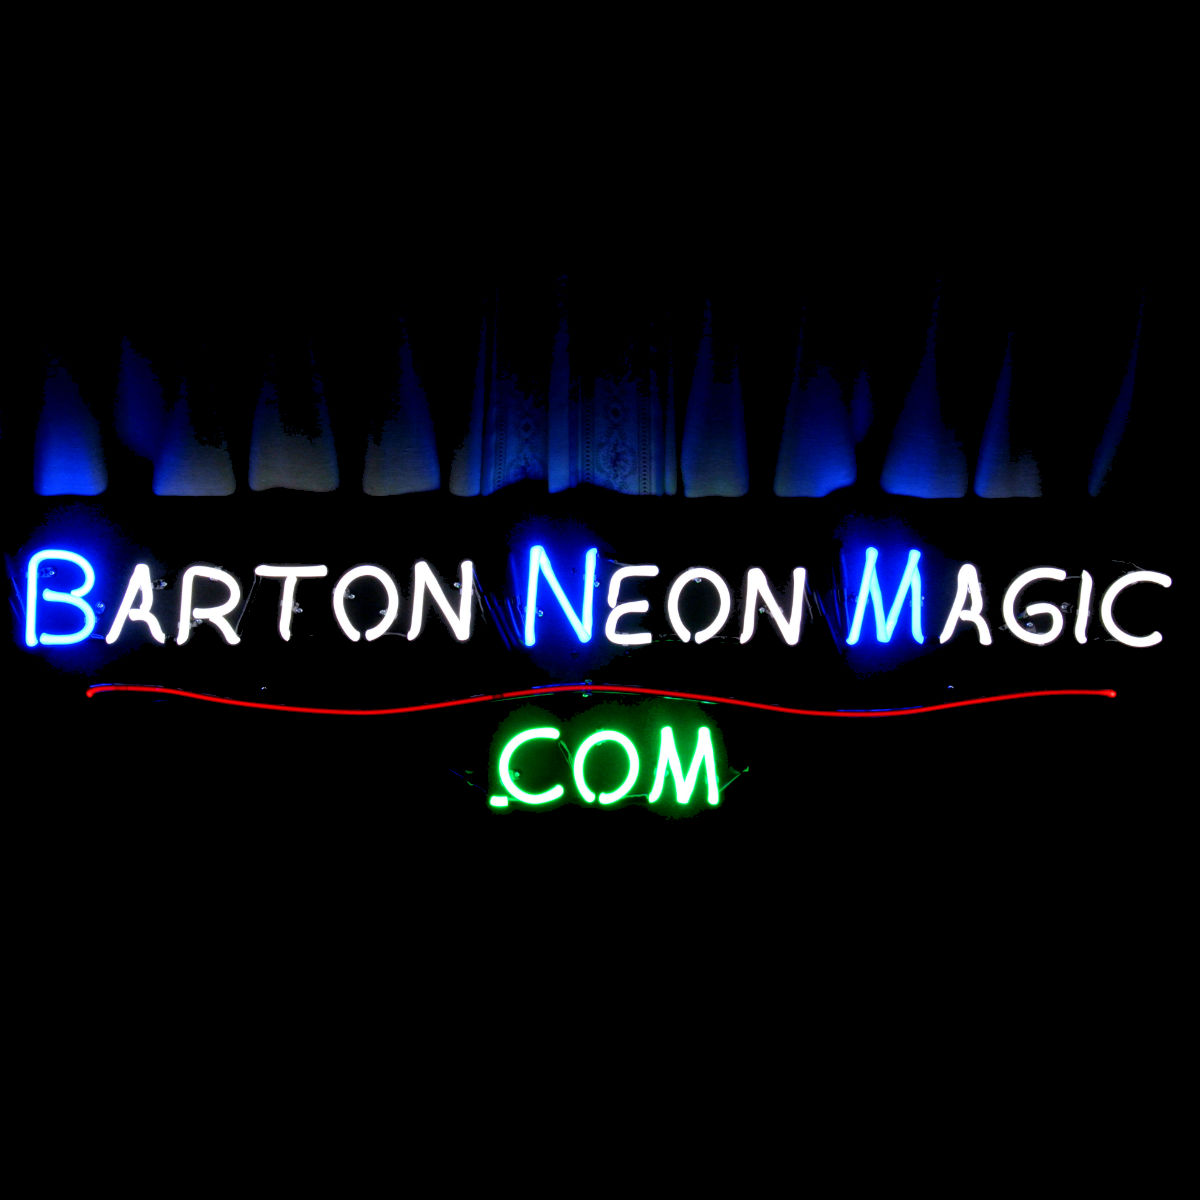 Custom Airplane Neon Light Artworks by John Barton - BartonNeonMagic.com